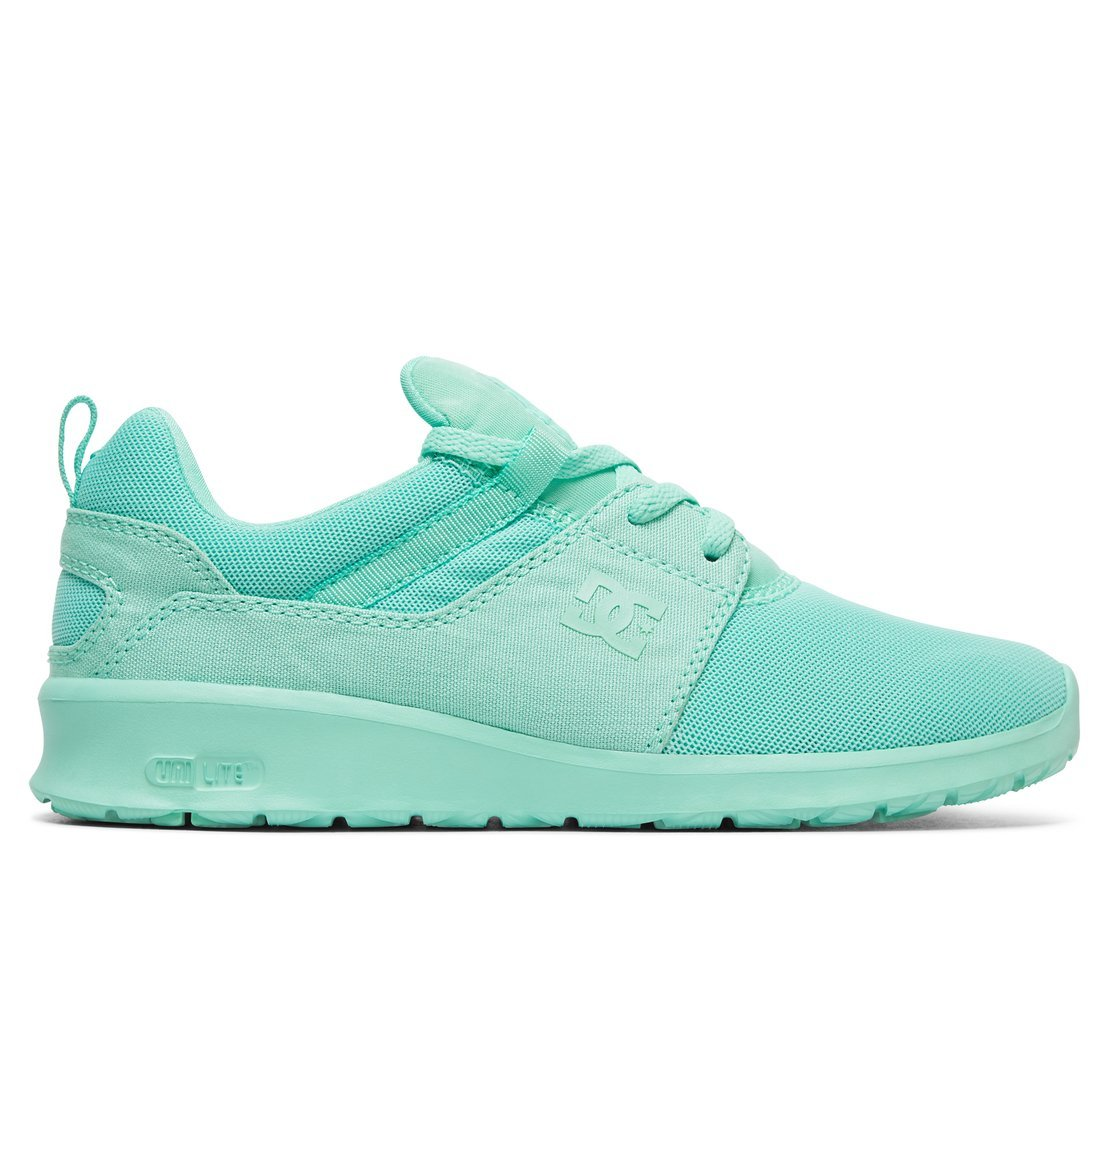 DC Shoes Heathrow, Sneakers 14970 Basses Mint Femme Sneakers Vert - Mint 6770c49 - conorscully.space